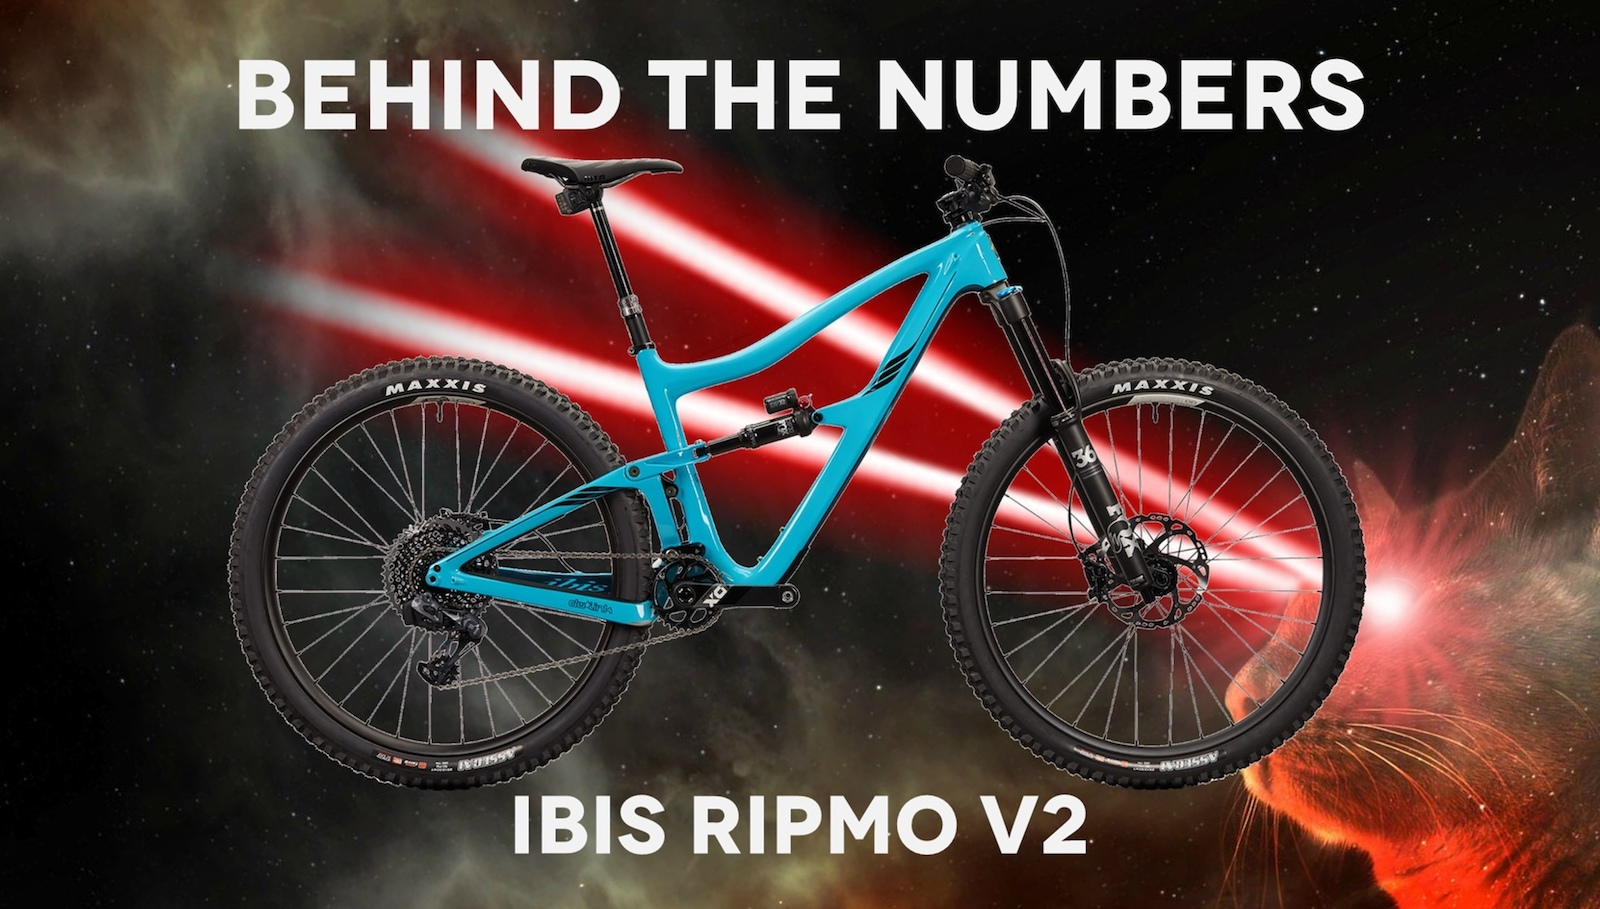 Behind the Numbers Ibis Ripmo V2